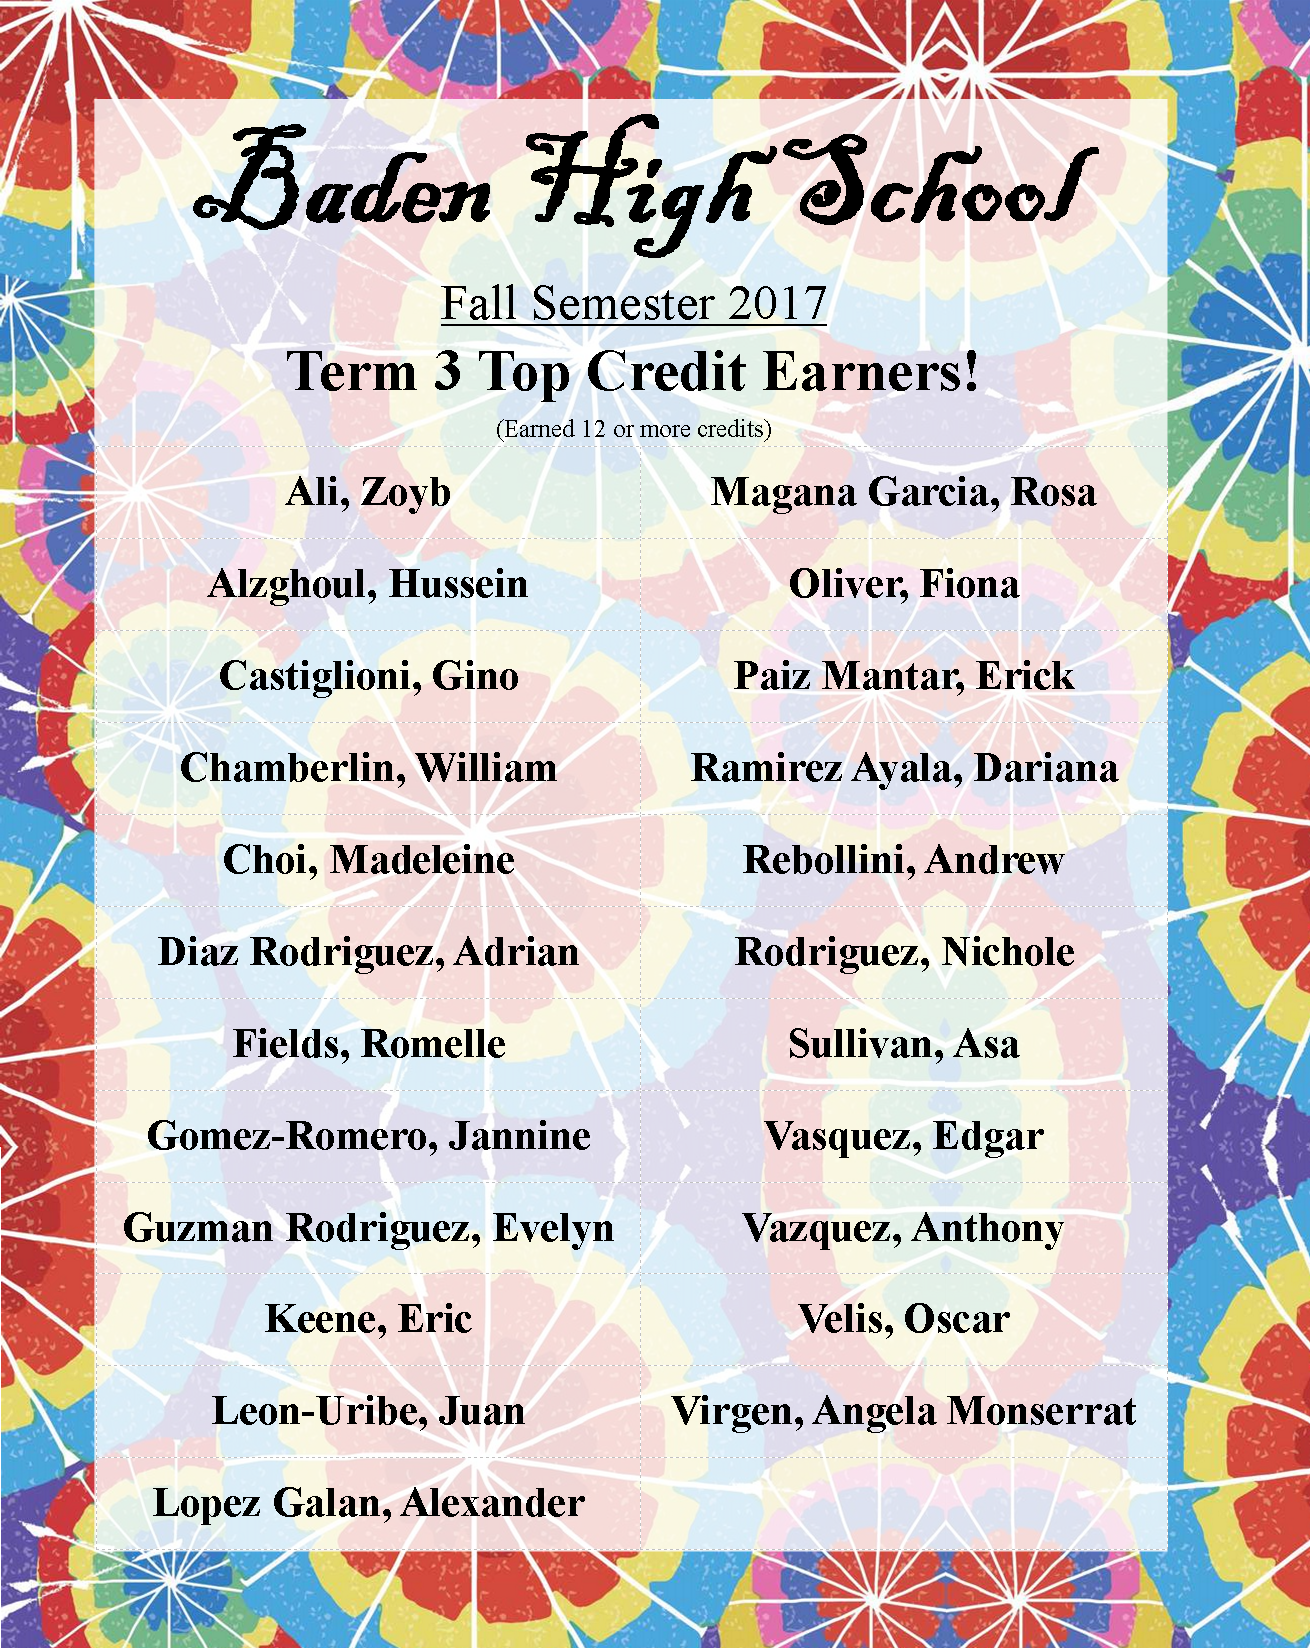 term 3 top credit earners